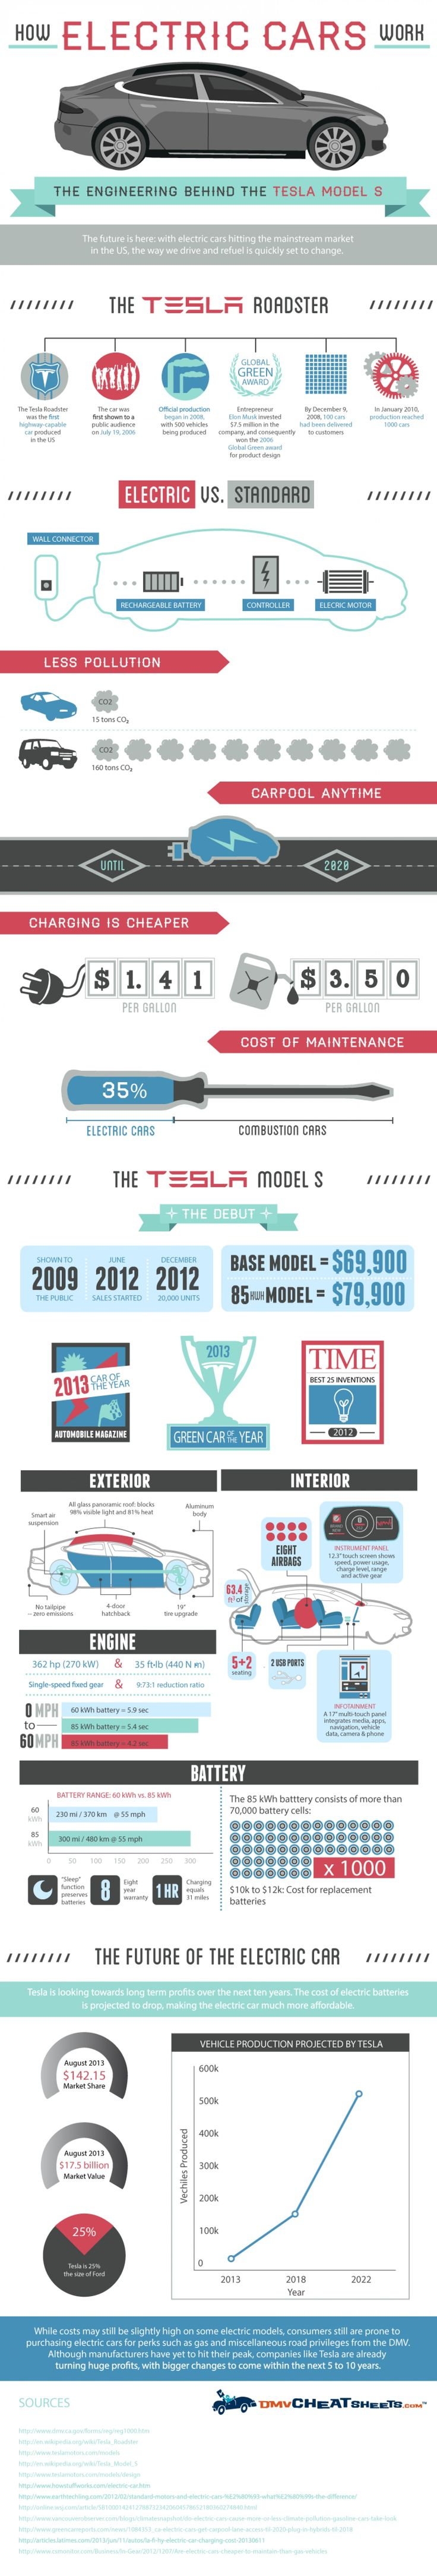 How Electric Cars (and the Tesla Model S) Work #infographic